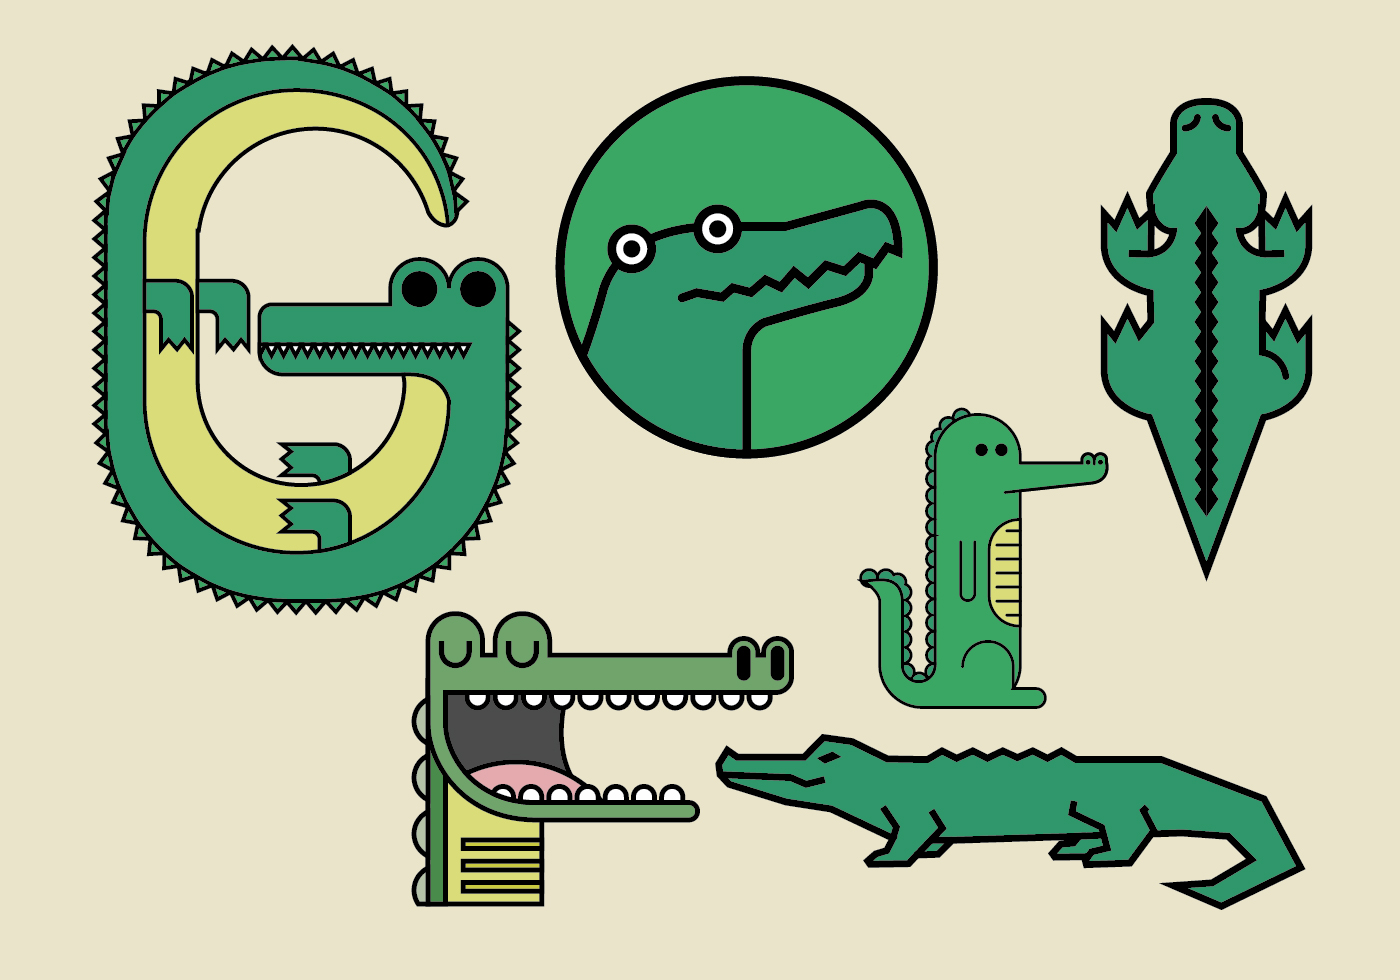 Gator Vector Illustrations Download Free Vector Art Stock Graphics Amp Images